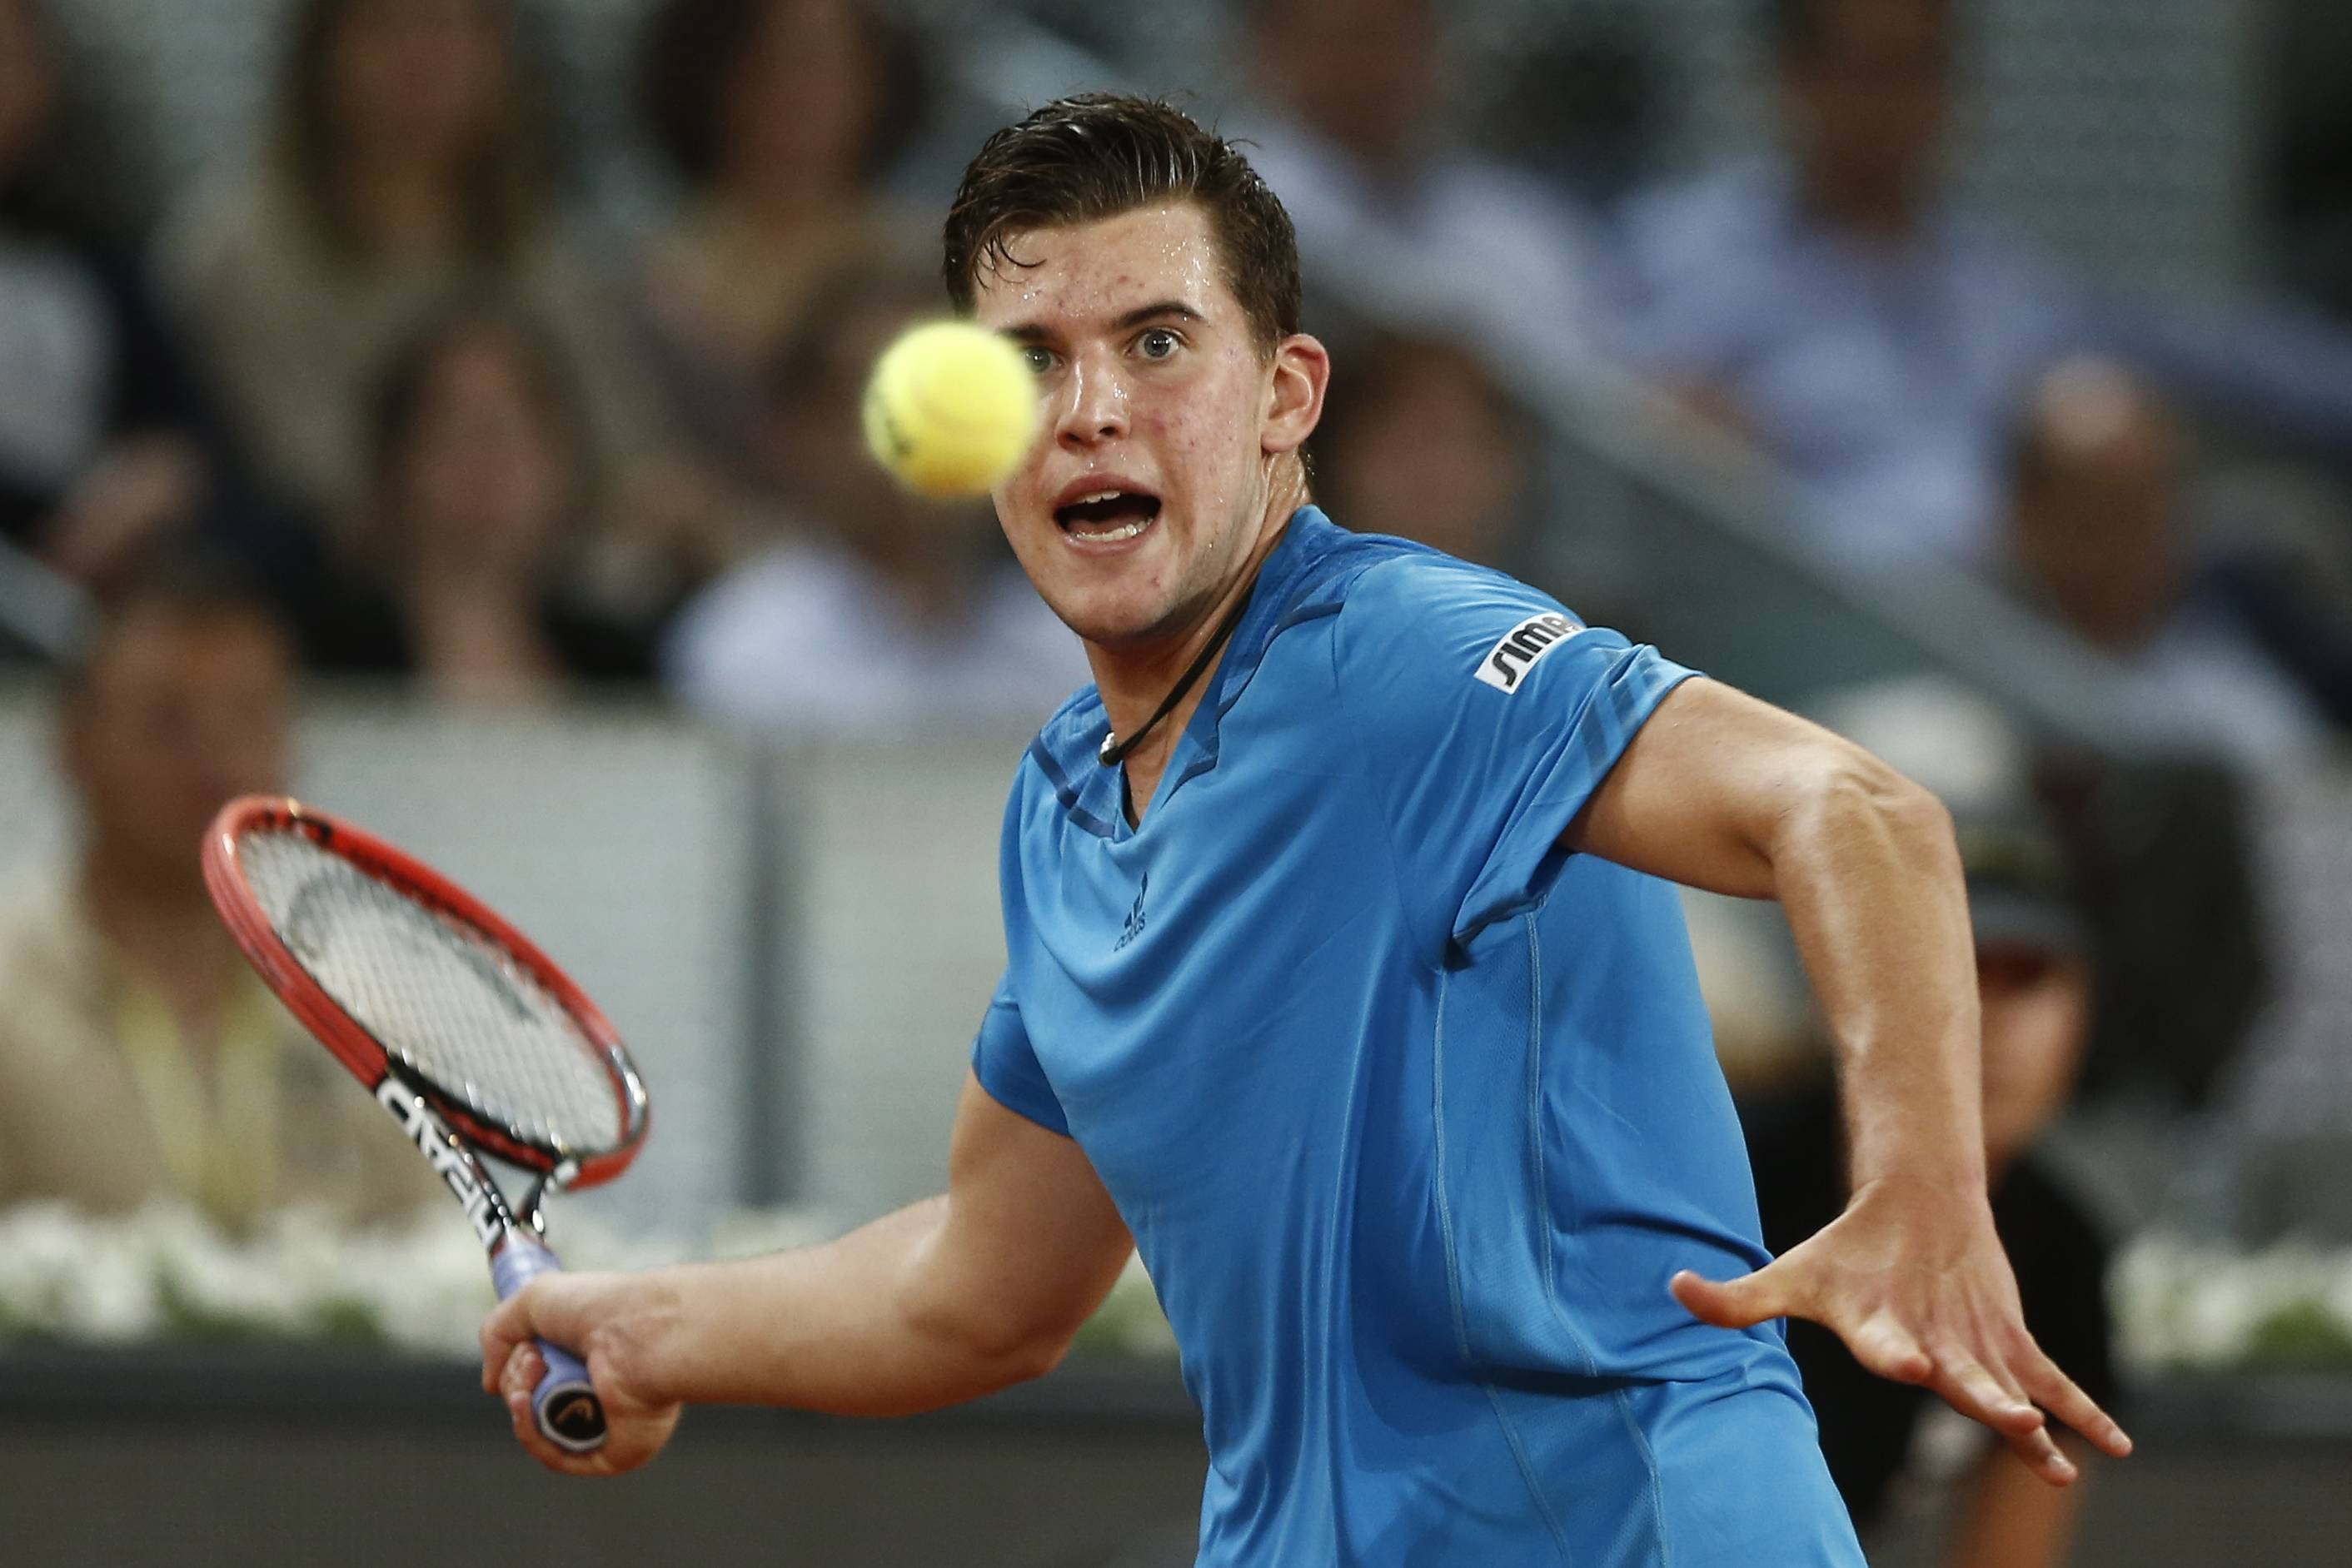 Dominic Thiem from Austria returns the ball during a Madrid Open tennis tournament match against Stanislas Wawrinka from Switzerland, in Madrid, Spain, Tuesday, May 6, 2014.